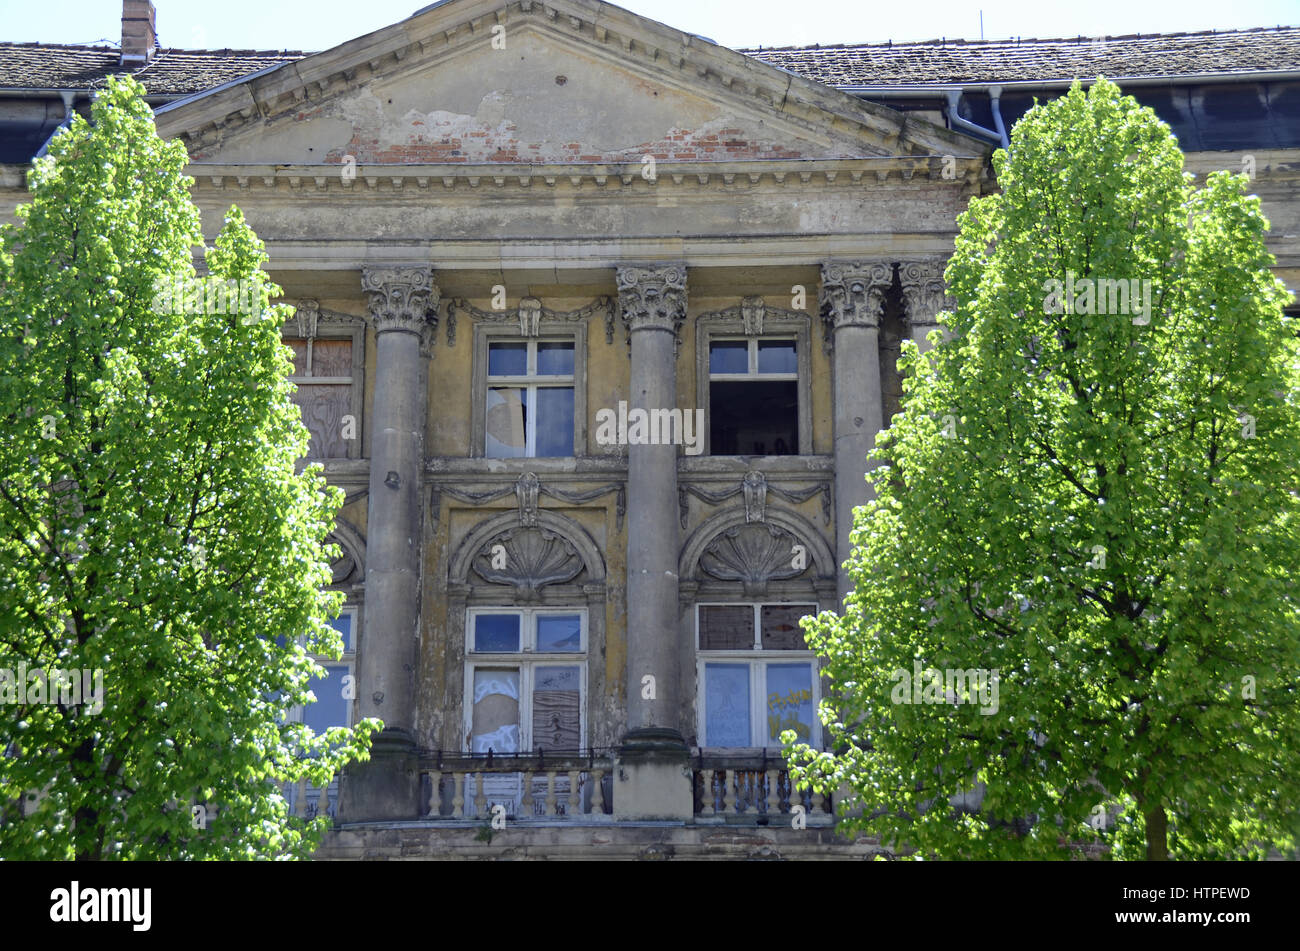 Historical house before reconstruction in the city of Potsdam 'Brockessches Palais' - Stock Image